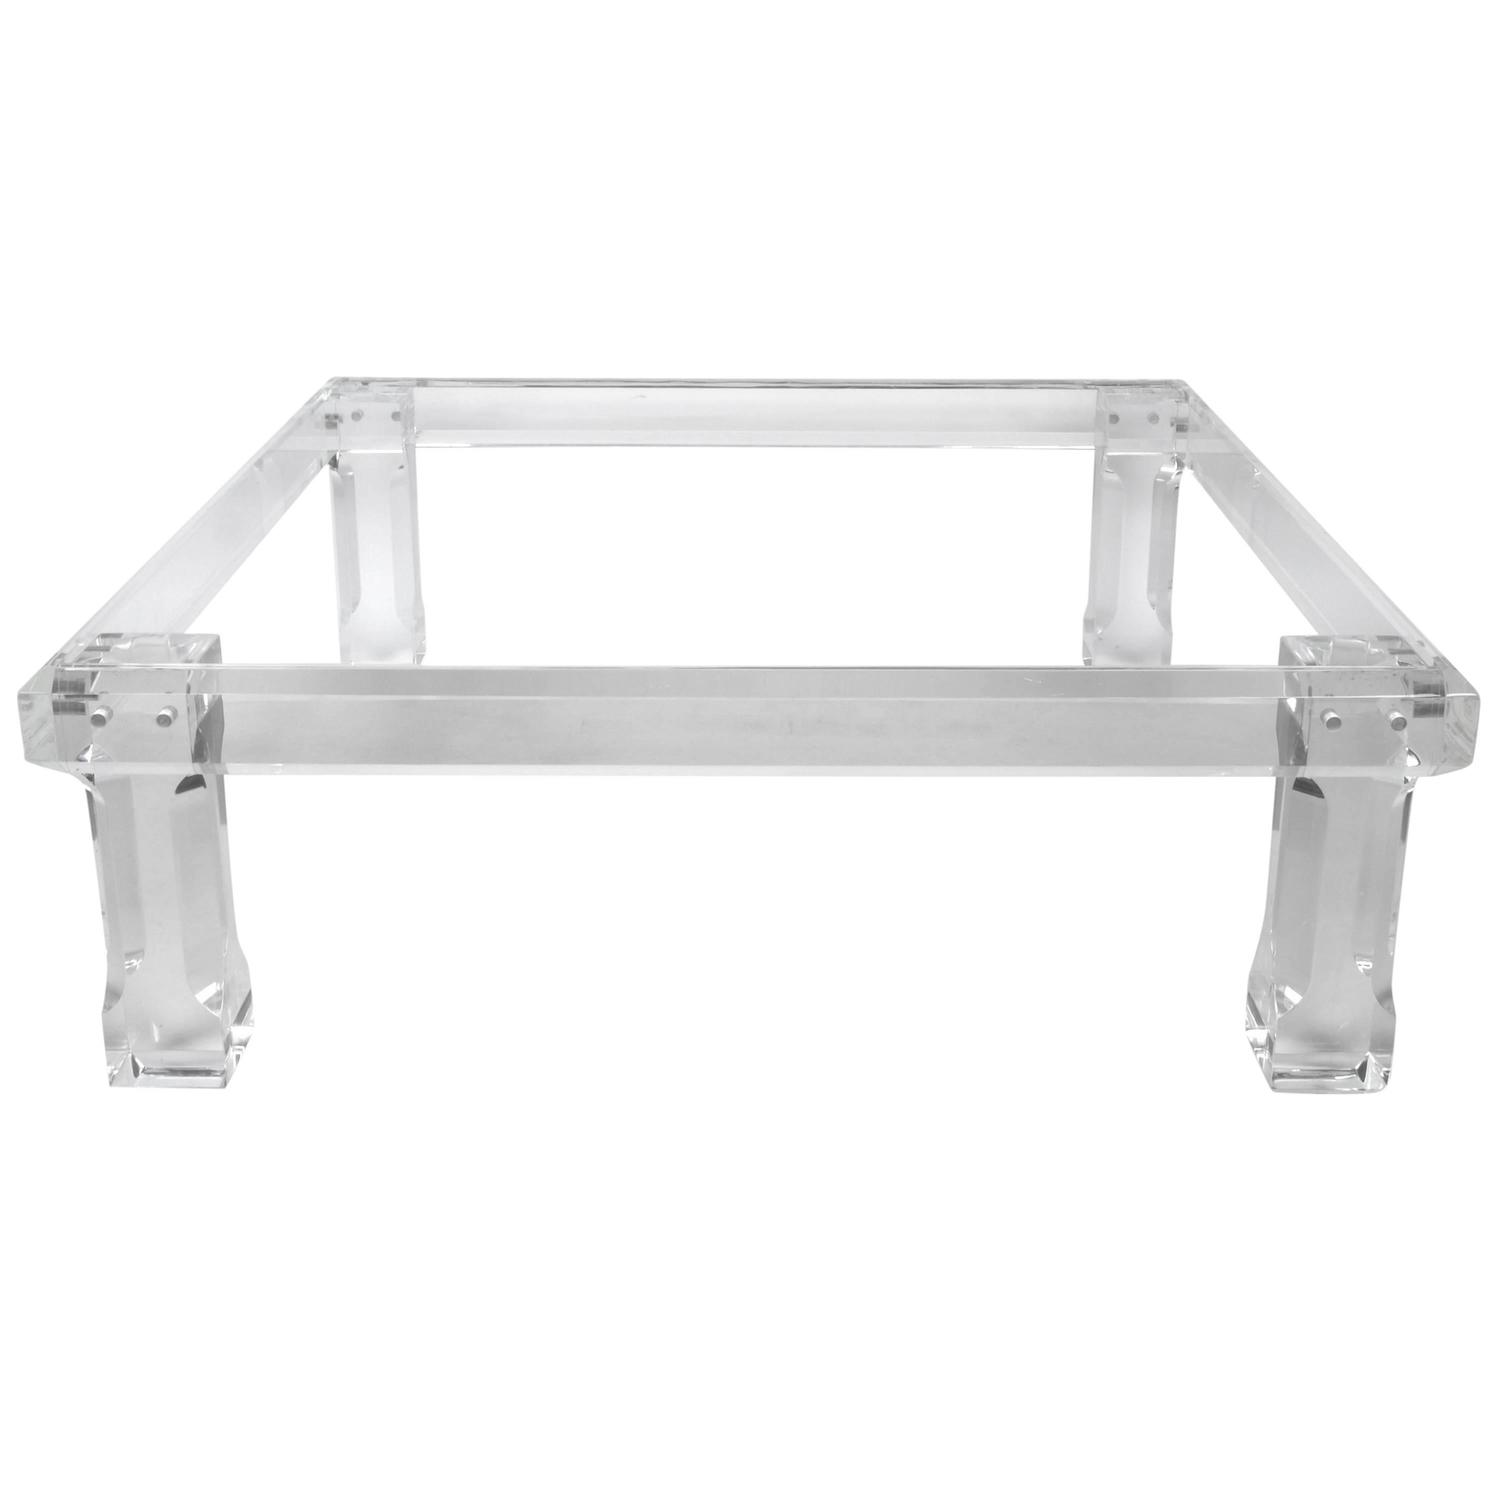 Square VJJ Lucite Coffee Table, 1977 - Lucite Coffee And Cocktail Tables - 368 For Sale At 1stdibs